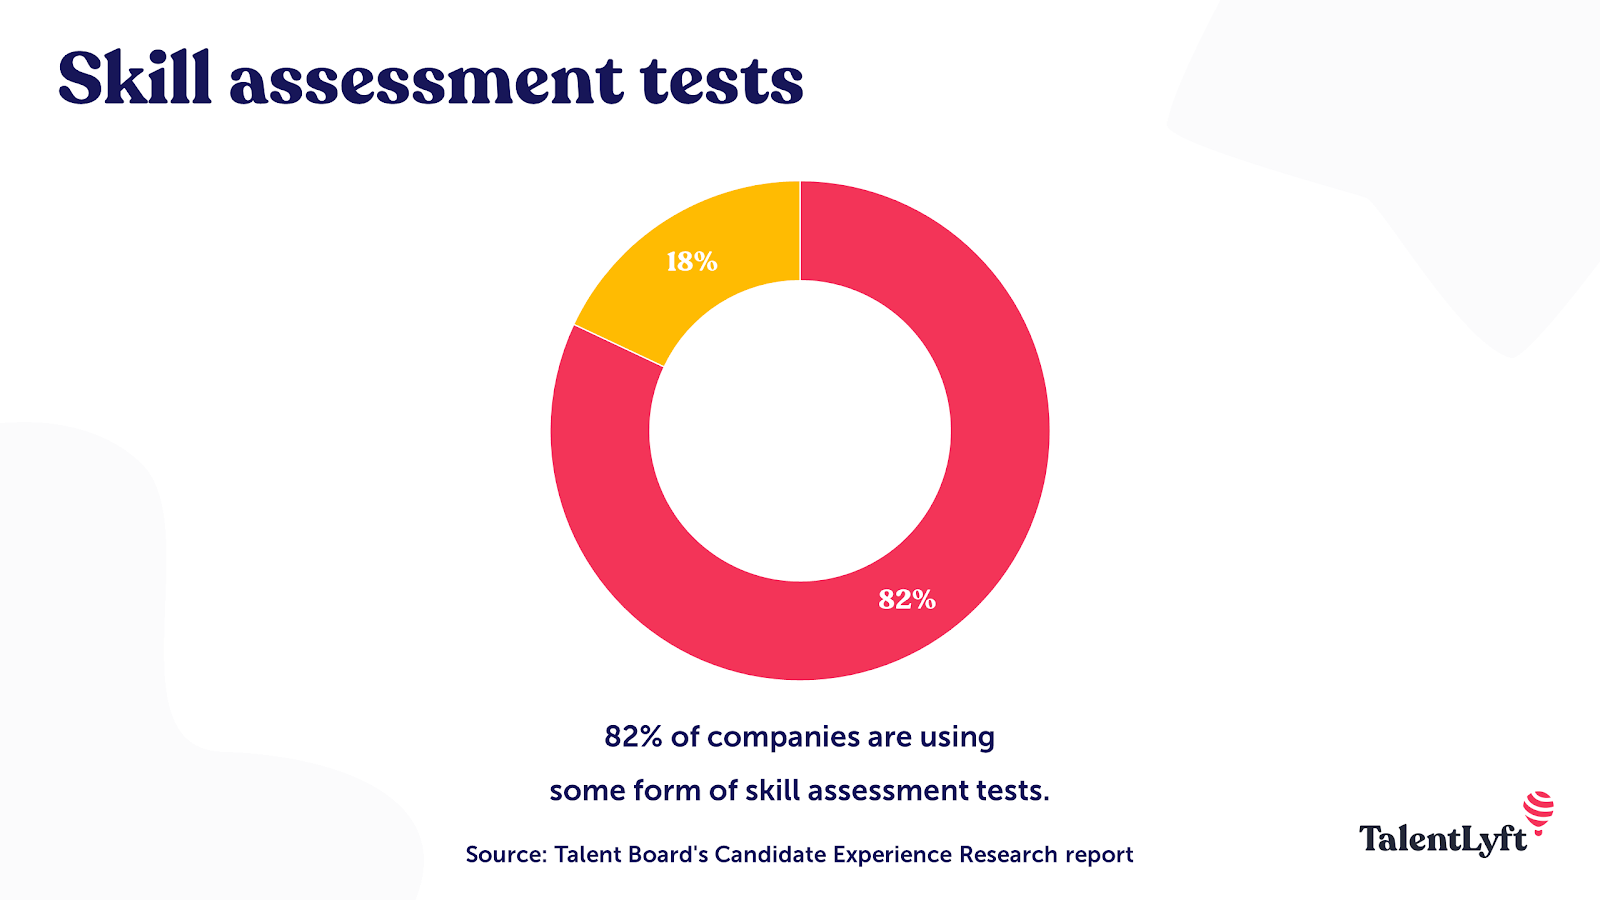 Skill assessment tests